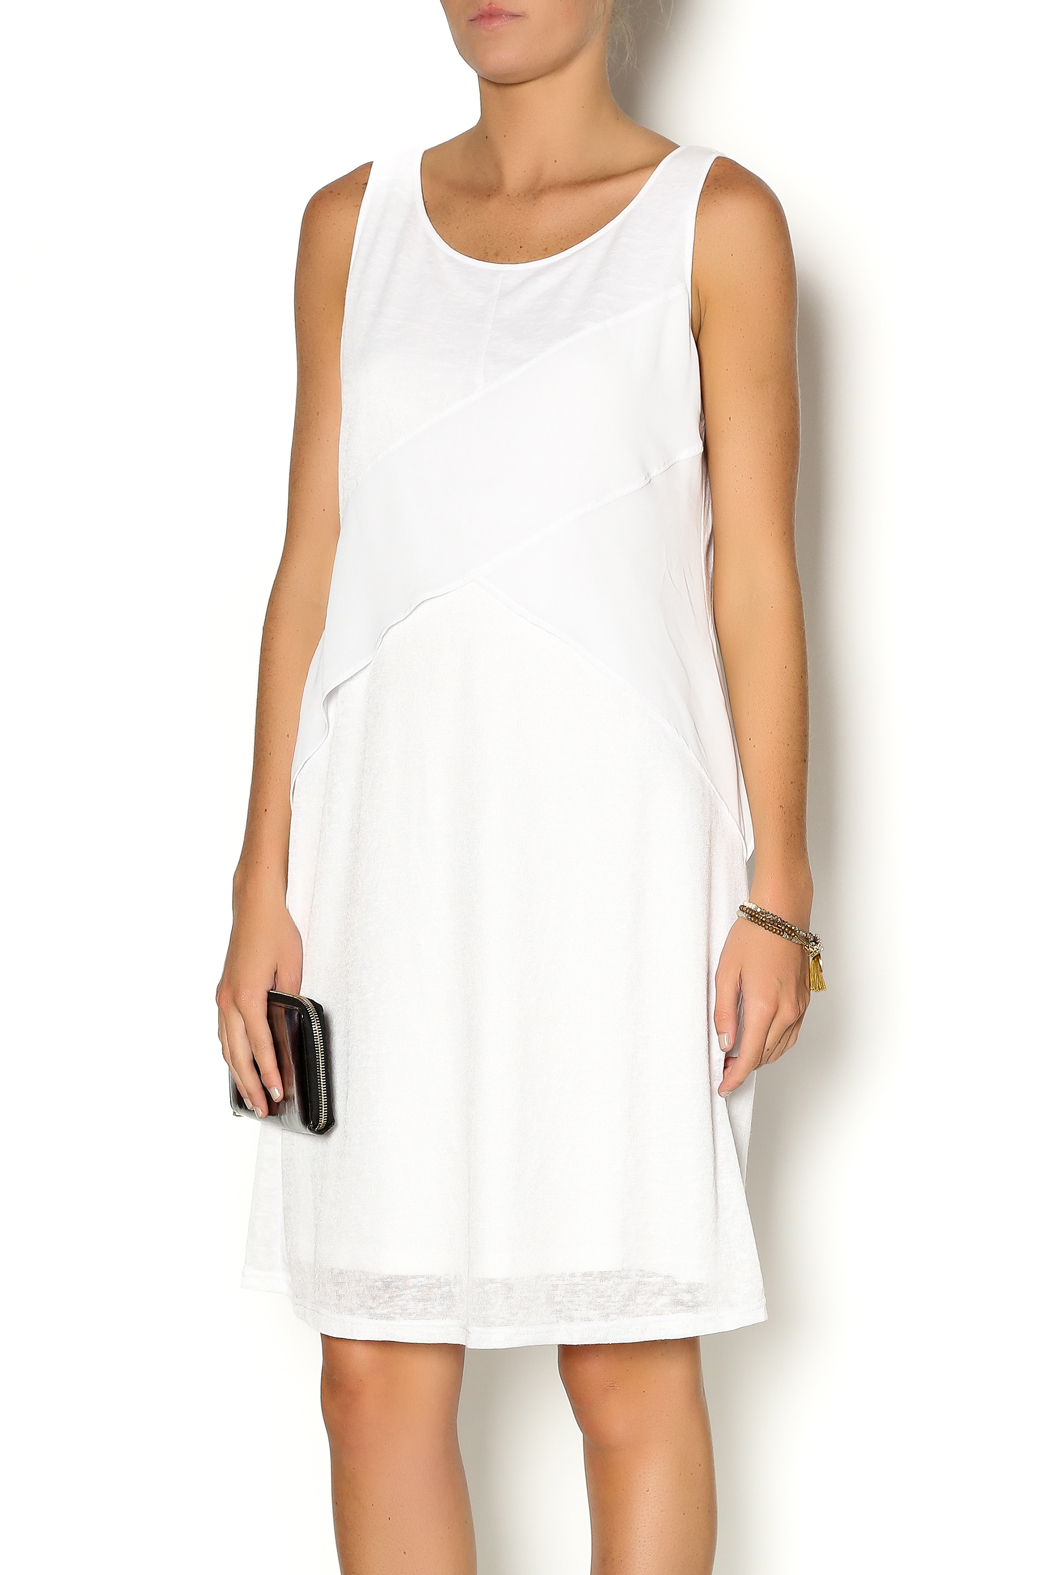 More Details Zoe Sleeveless Sheath Lace Asymmetric Dress, Black/White, Size Details Zoe contrast colorblock dress featuring lace panels. Crew neckline; exposed back zip. Sleeveless; wide straps. Asymmetric hem. Sheath silhouette. Matte sateen front, lace and lining: polyester.